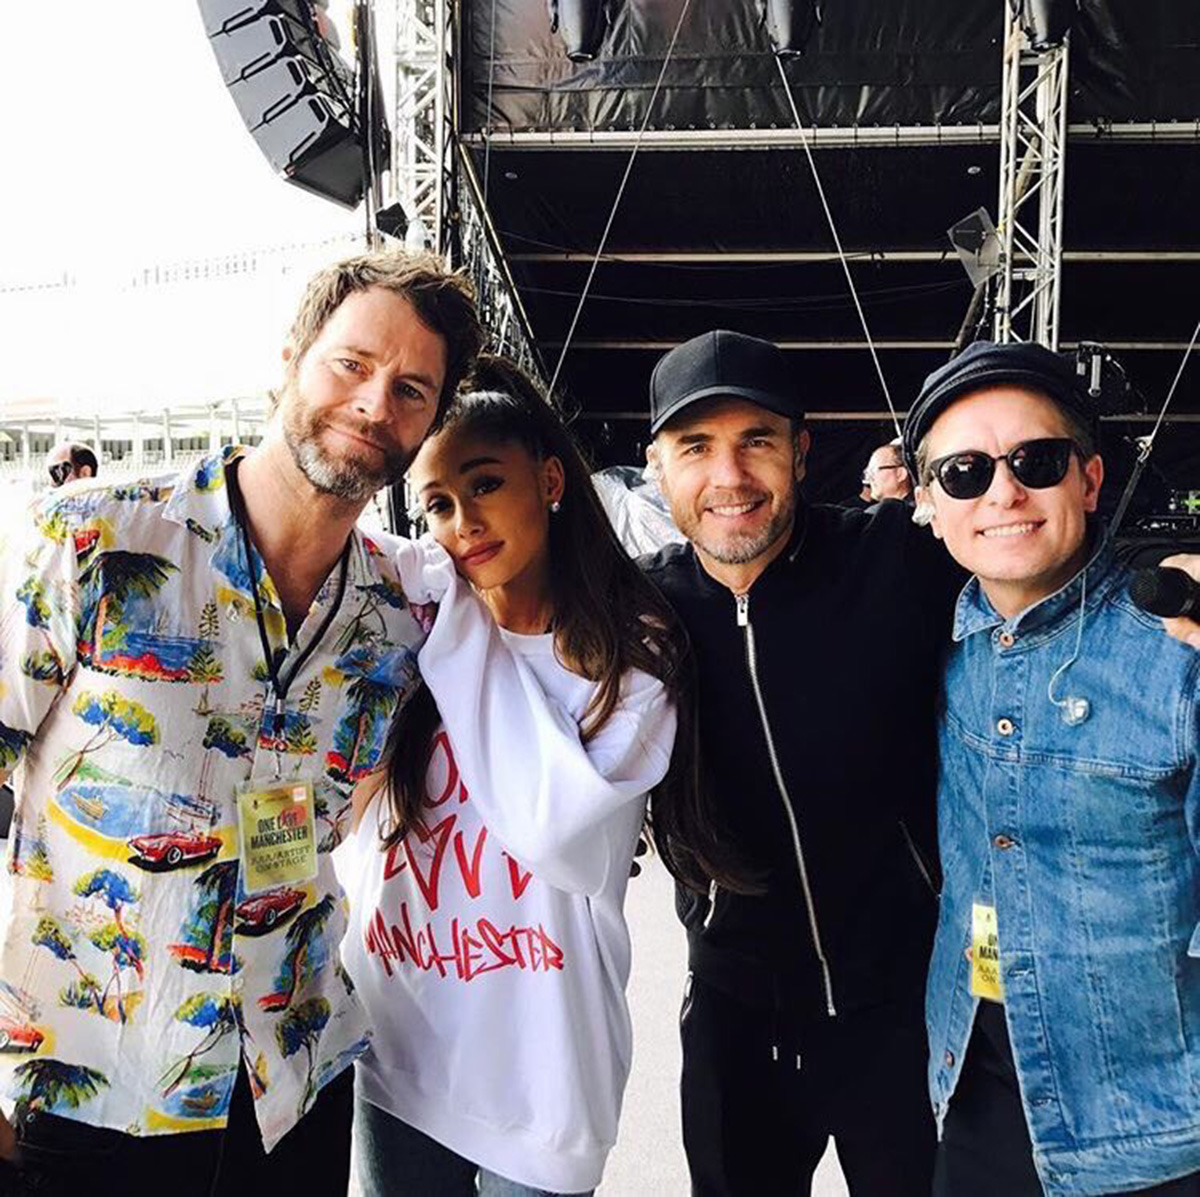 Ariana Grande and Take That join forces during One Love Manchester sound check